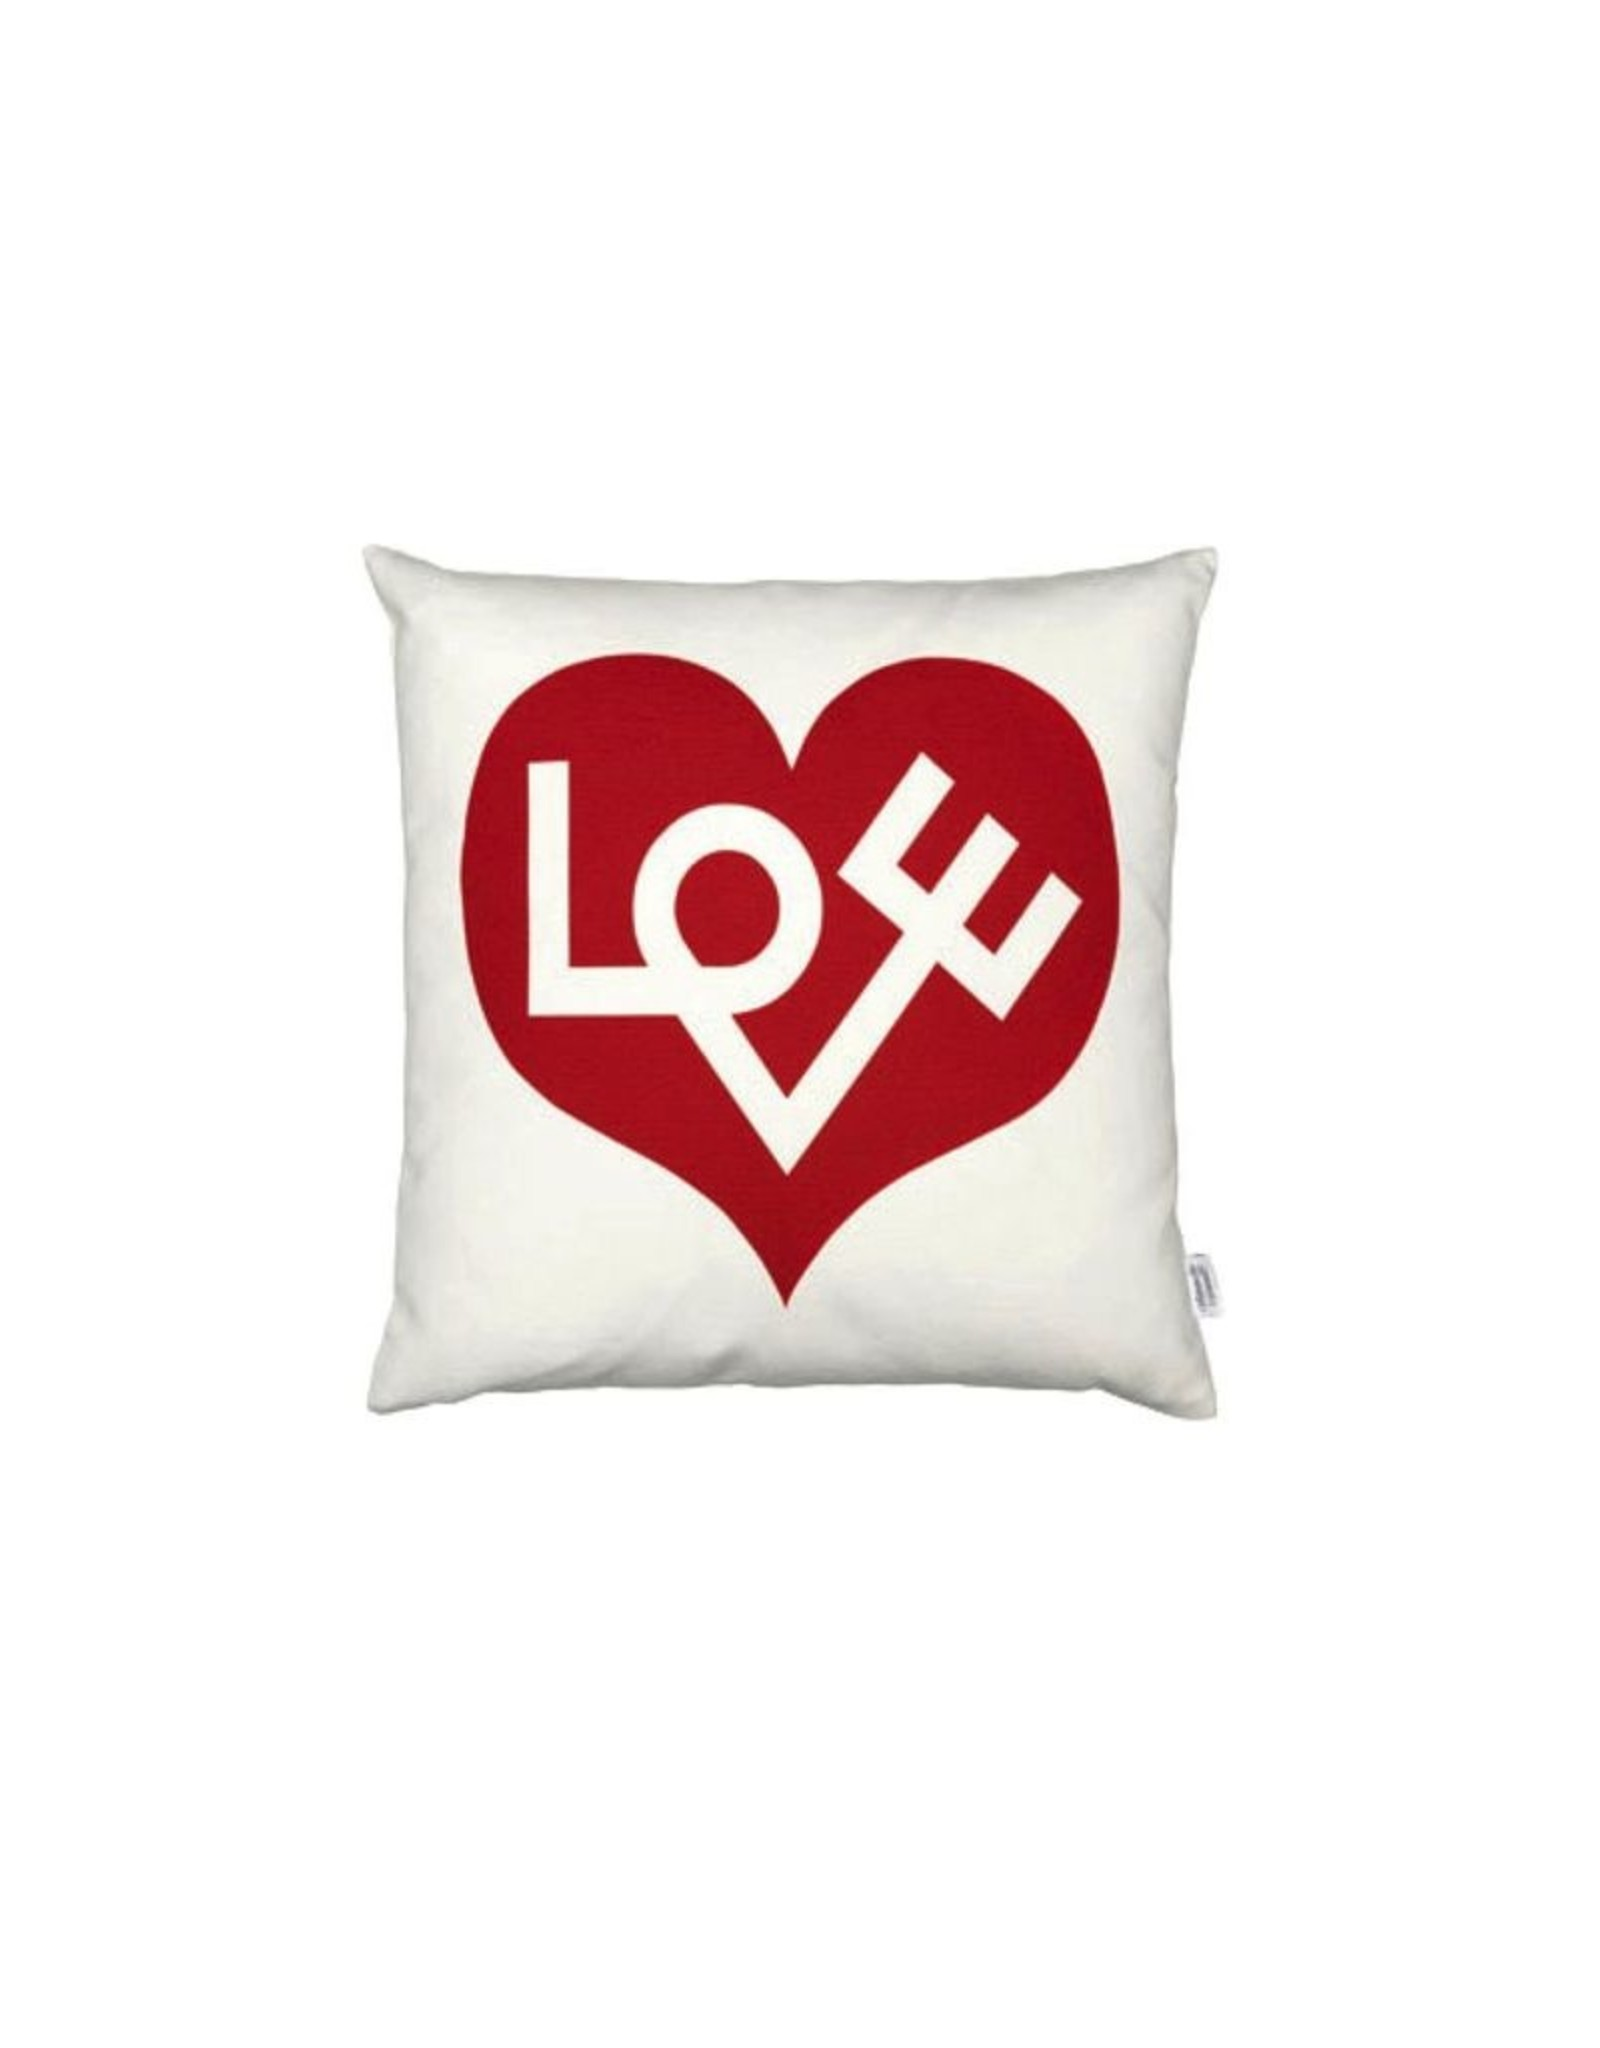 VITRA GRAPHIC PRINT PILLOWS LOVE RED